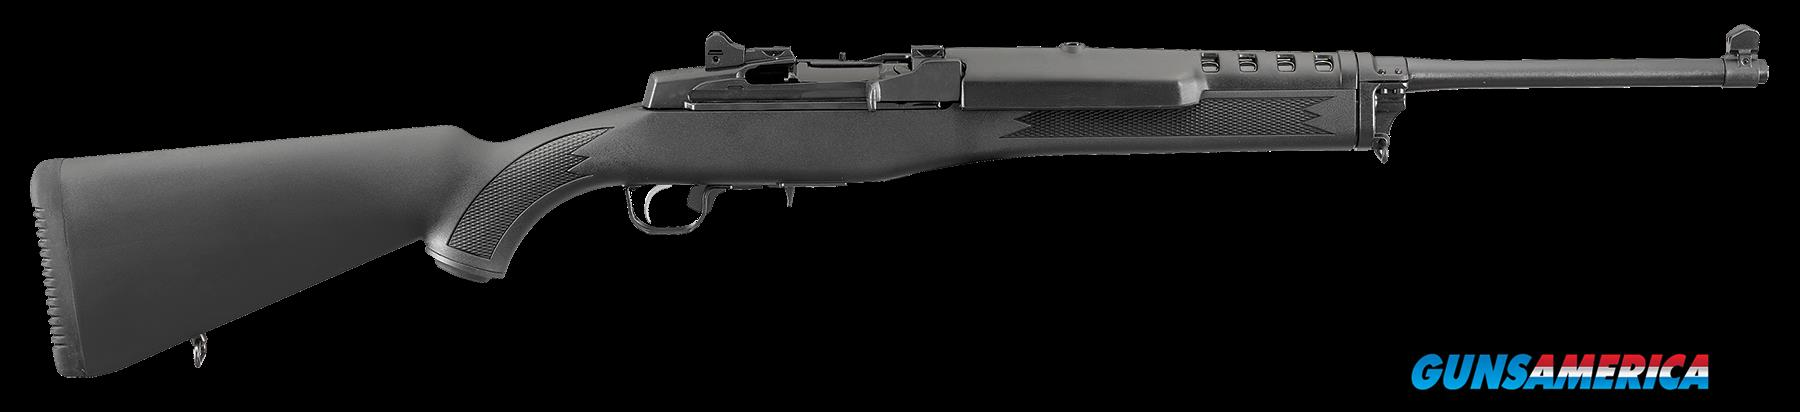 "Ruger 5855 Mini-14 Ranch Semi-Automatic 223 Remington/5.56 NATO 18.5"" 5+1 Synthetic Black Stk Blued  Guns > Rifles > R Misc Rifles"